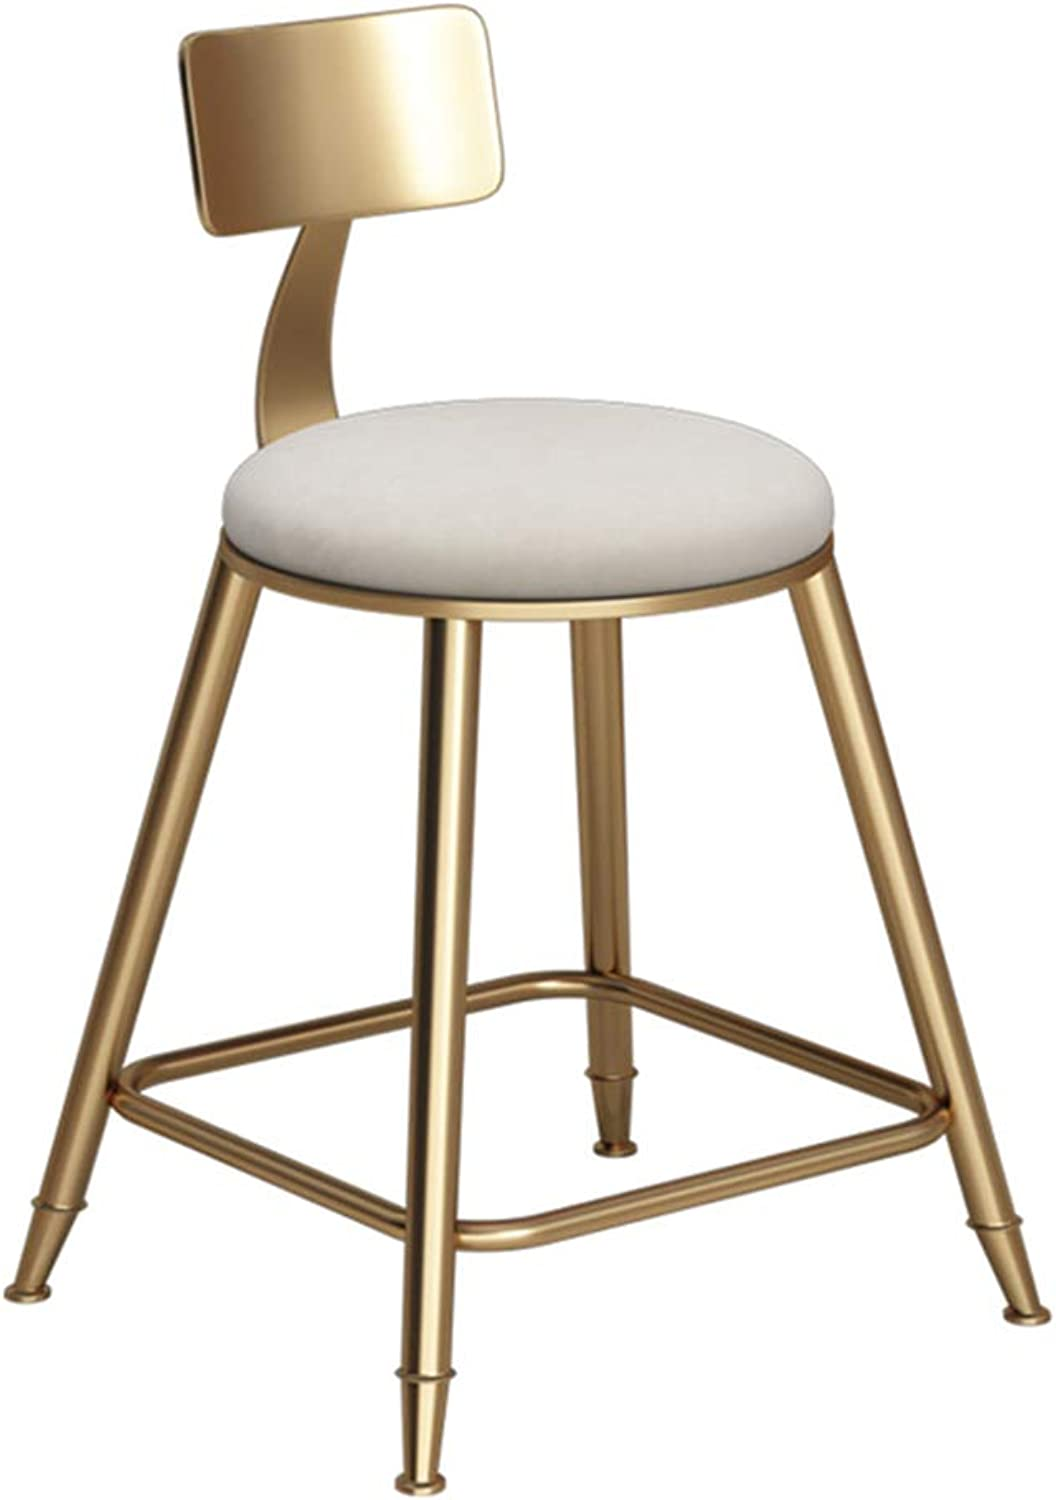 Barstools Chair Footstool Backrest White Sponge Pad Dining Chair Kitchen   Bar   CaféBarCounter Stool Loading 150 Kg (Size   43x43x45cm)